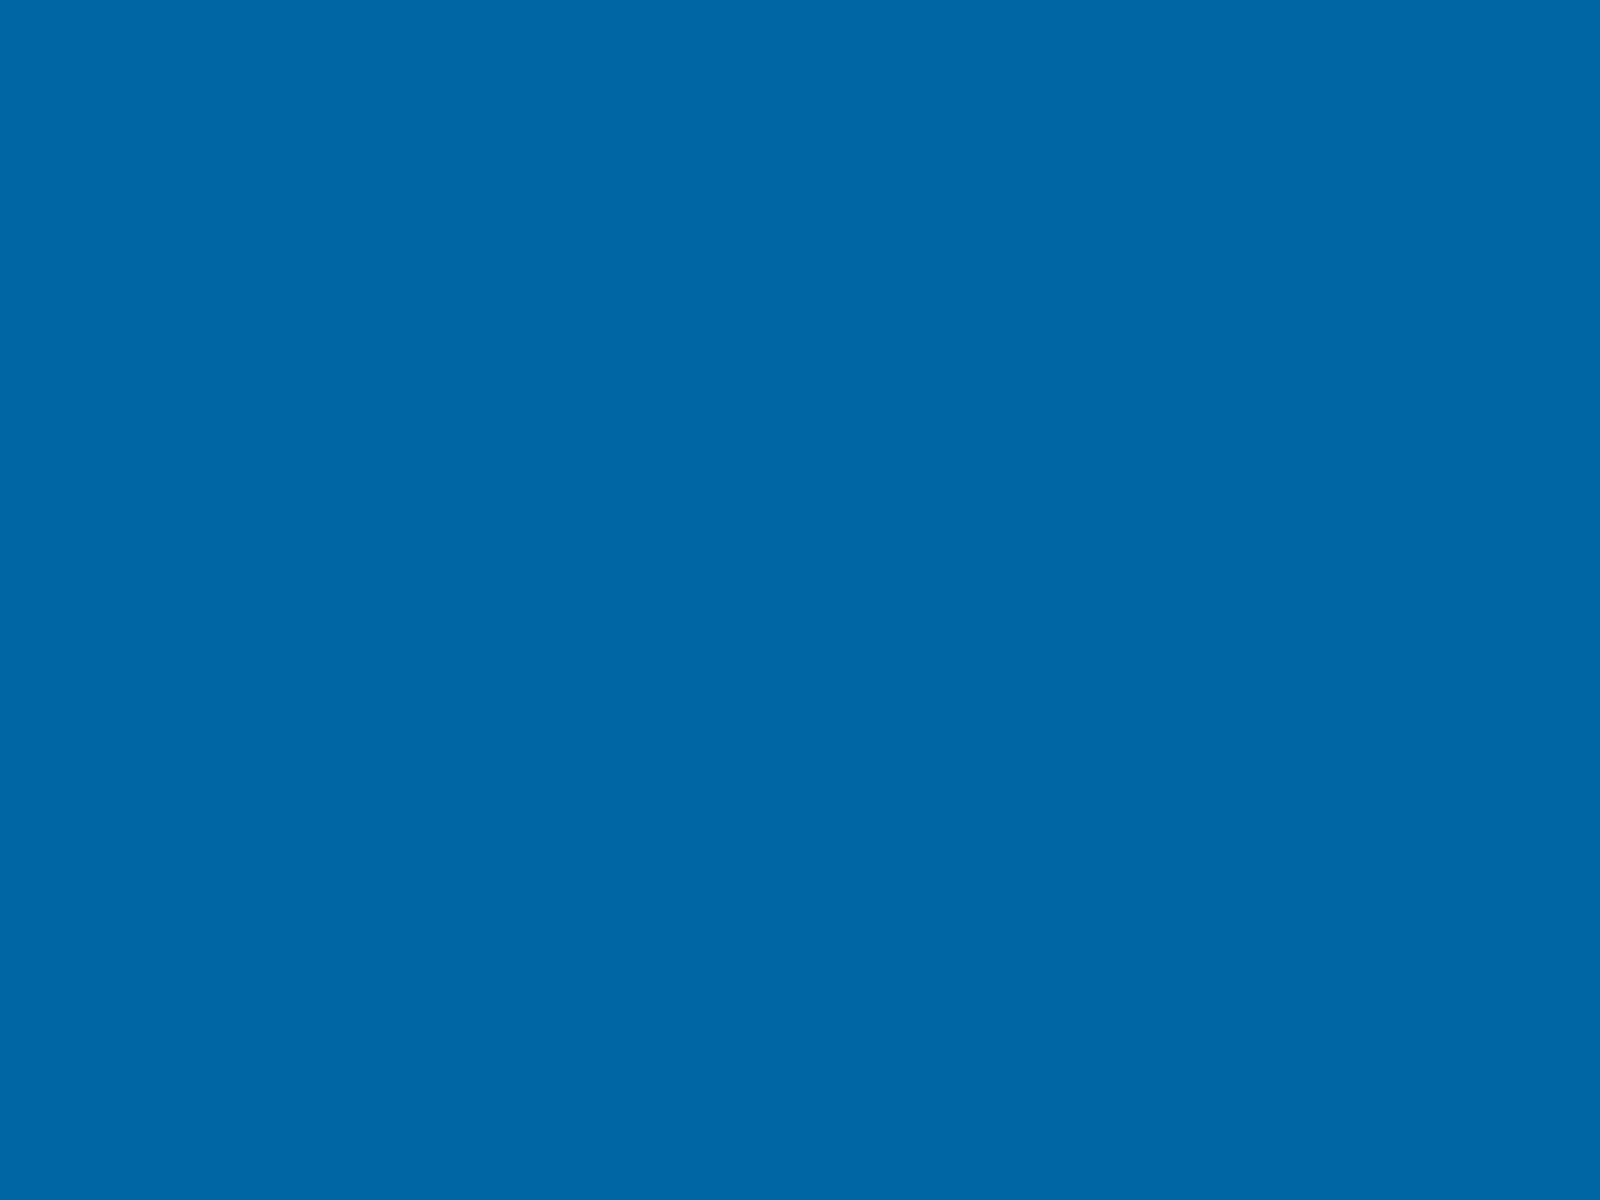 1600x1200 Sapphire Blue Solid Color Background